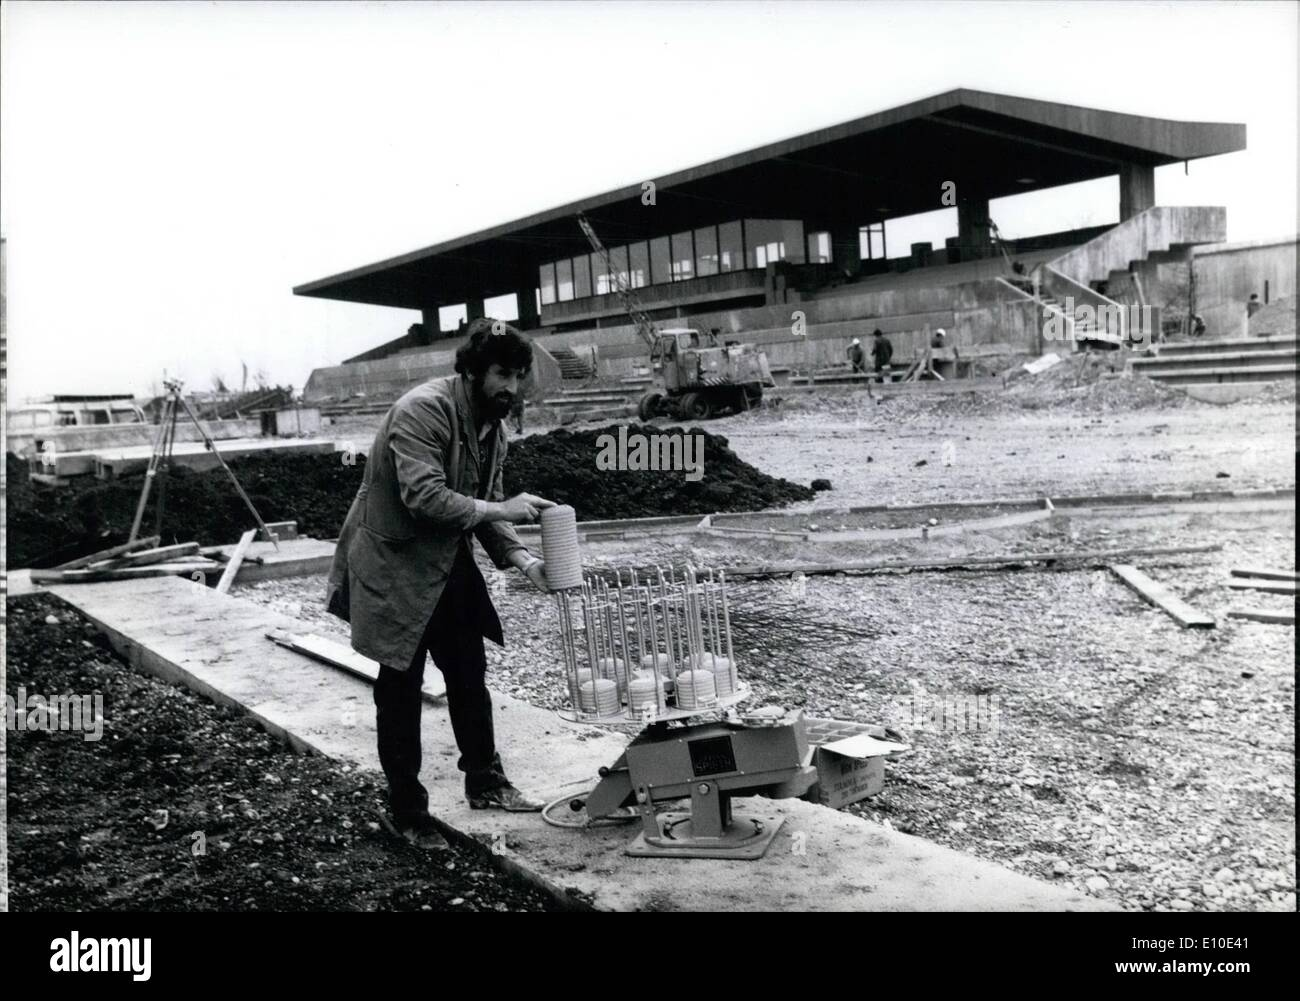 May 05, 1972 - Shooting-range on Munich's Olympia-ground is nearly finish: Around 80,000 shoots will be fired by Stock Photo